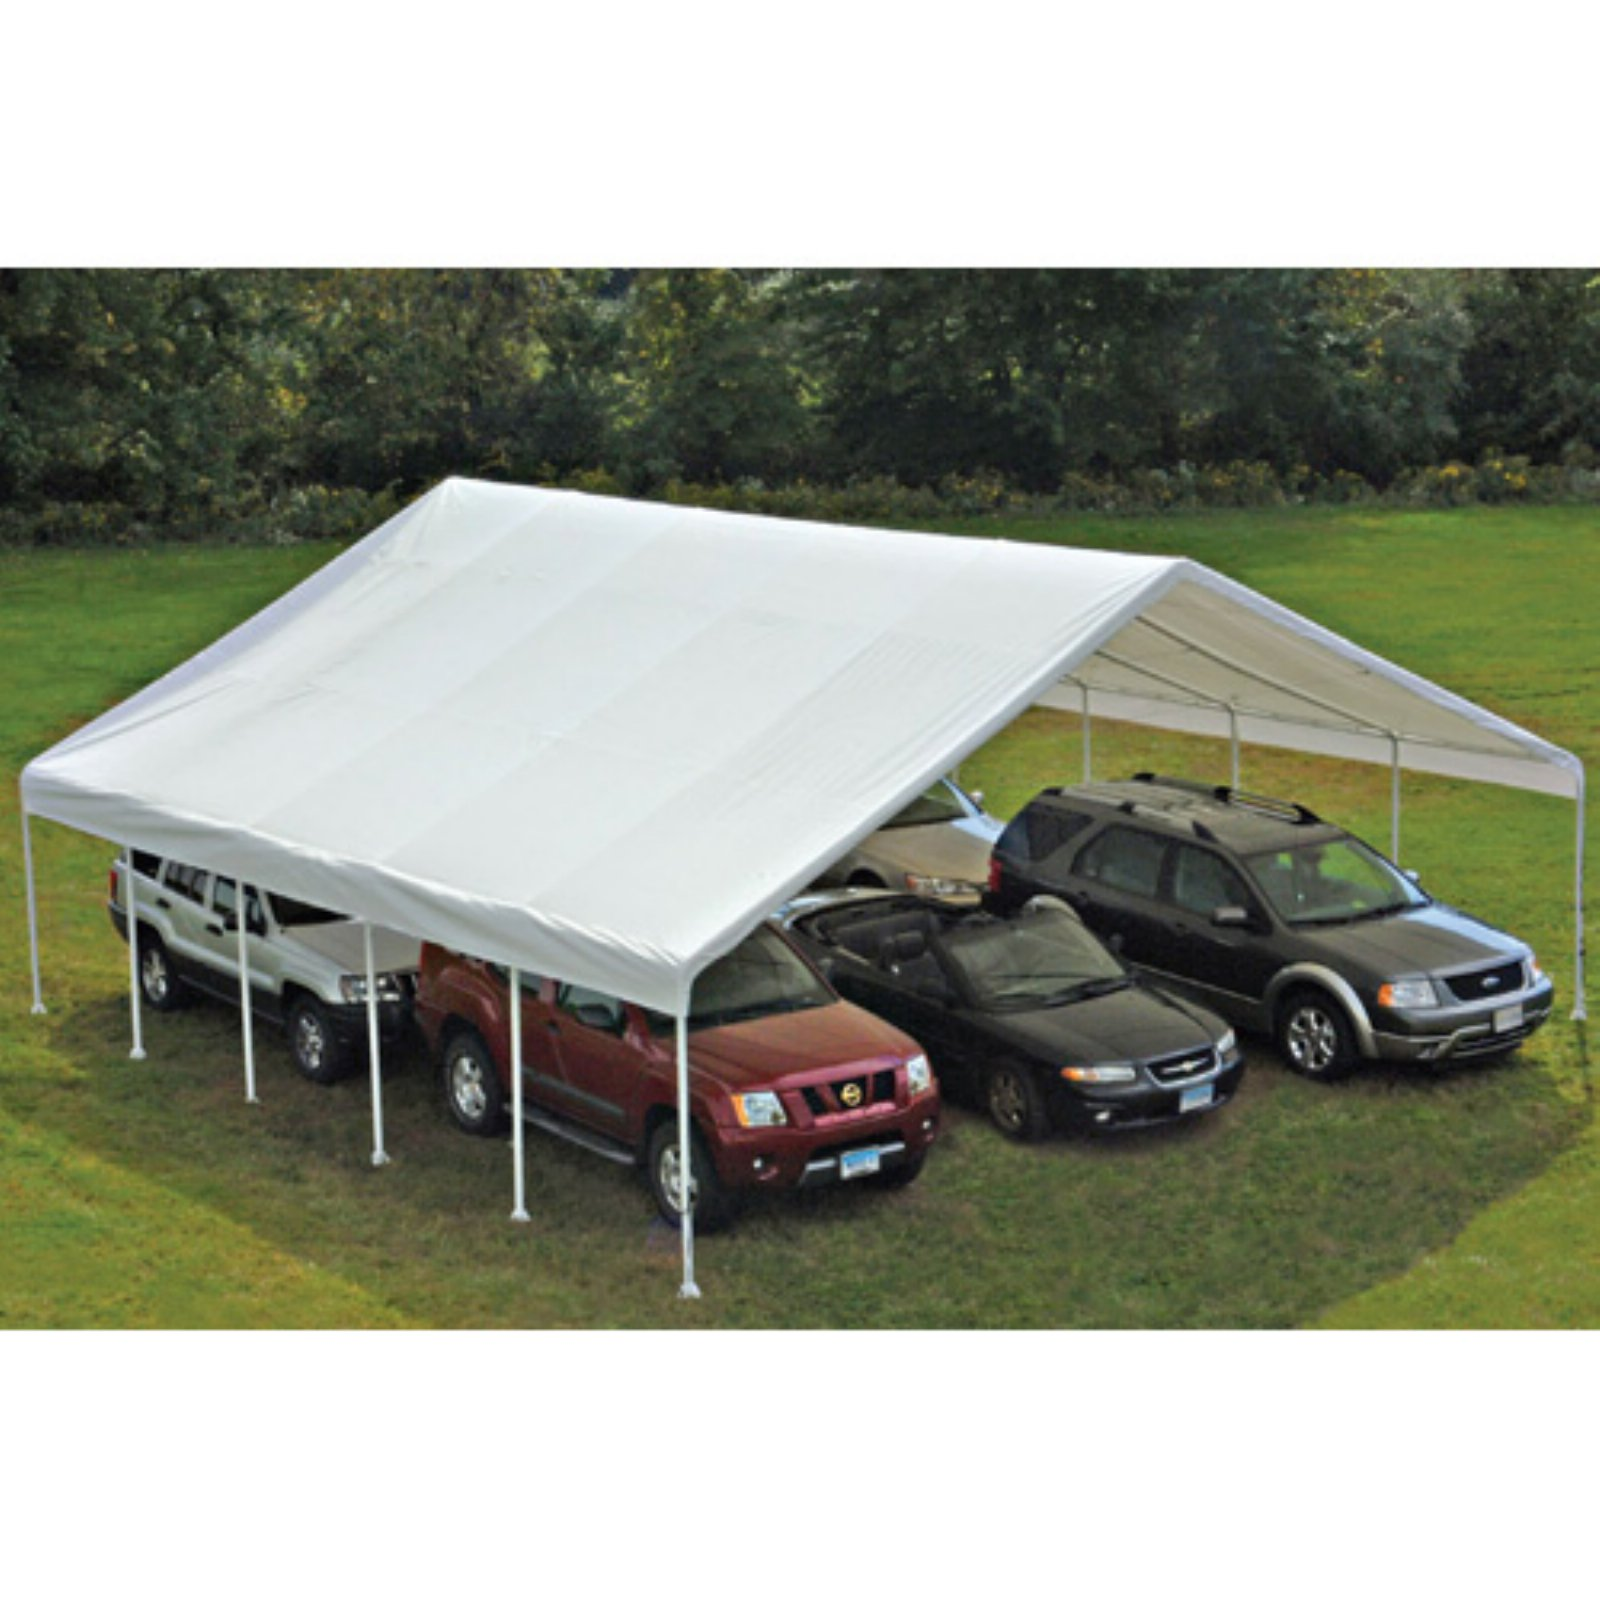 ShelterLogic Ultra Max 30' x 50' White Industrial Canopy